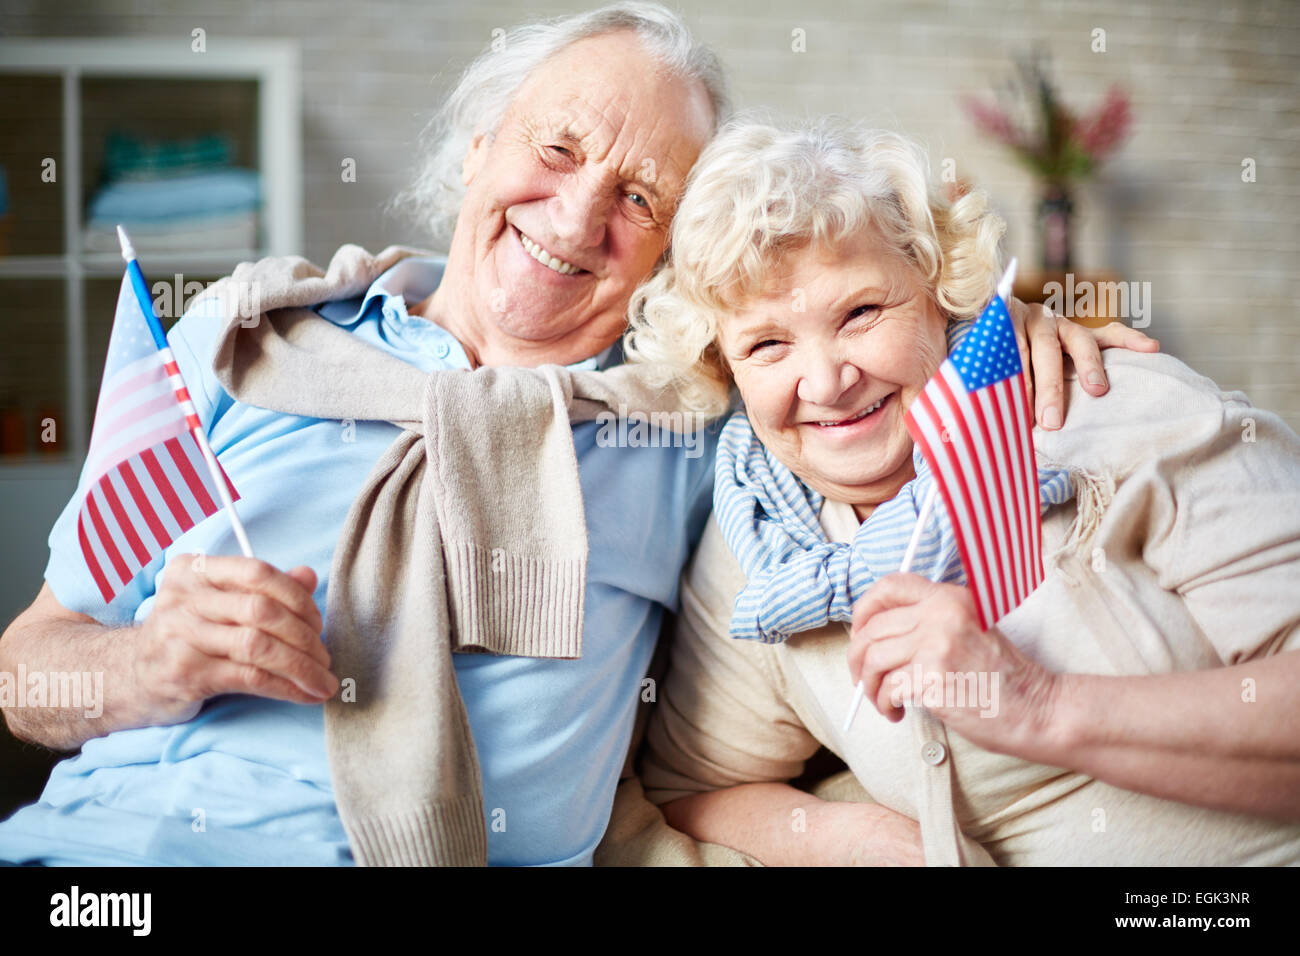 Smiling seniors with American flags - Stock Image